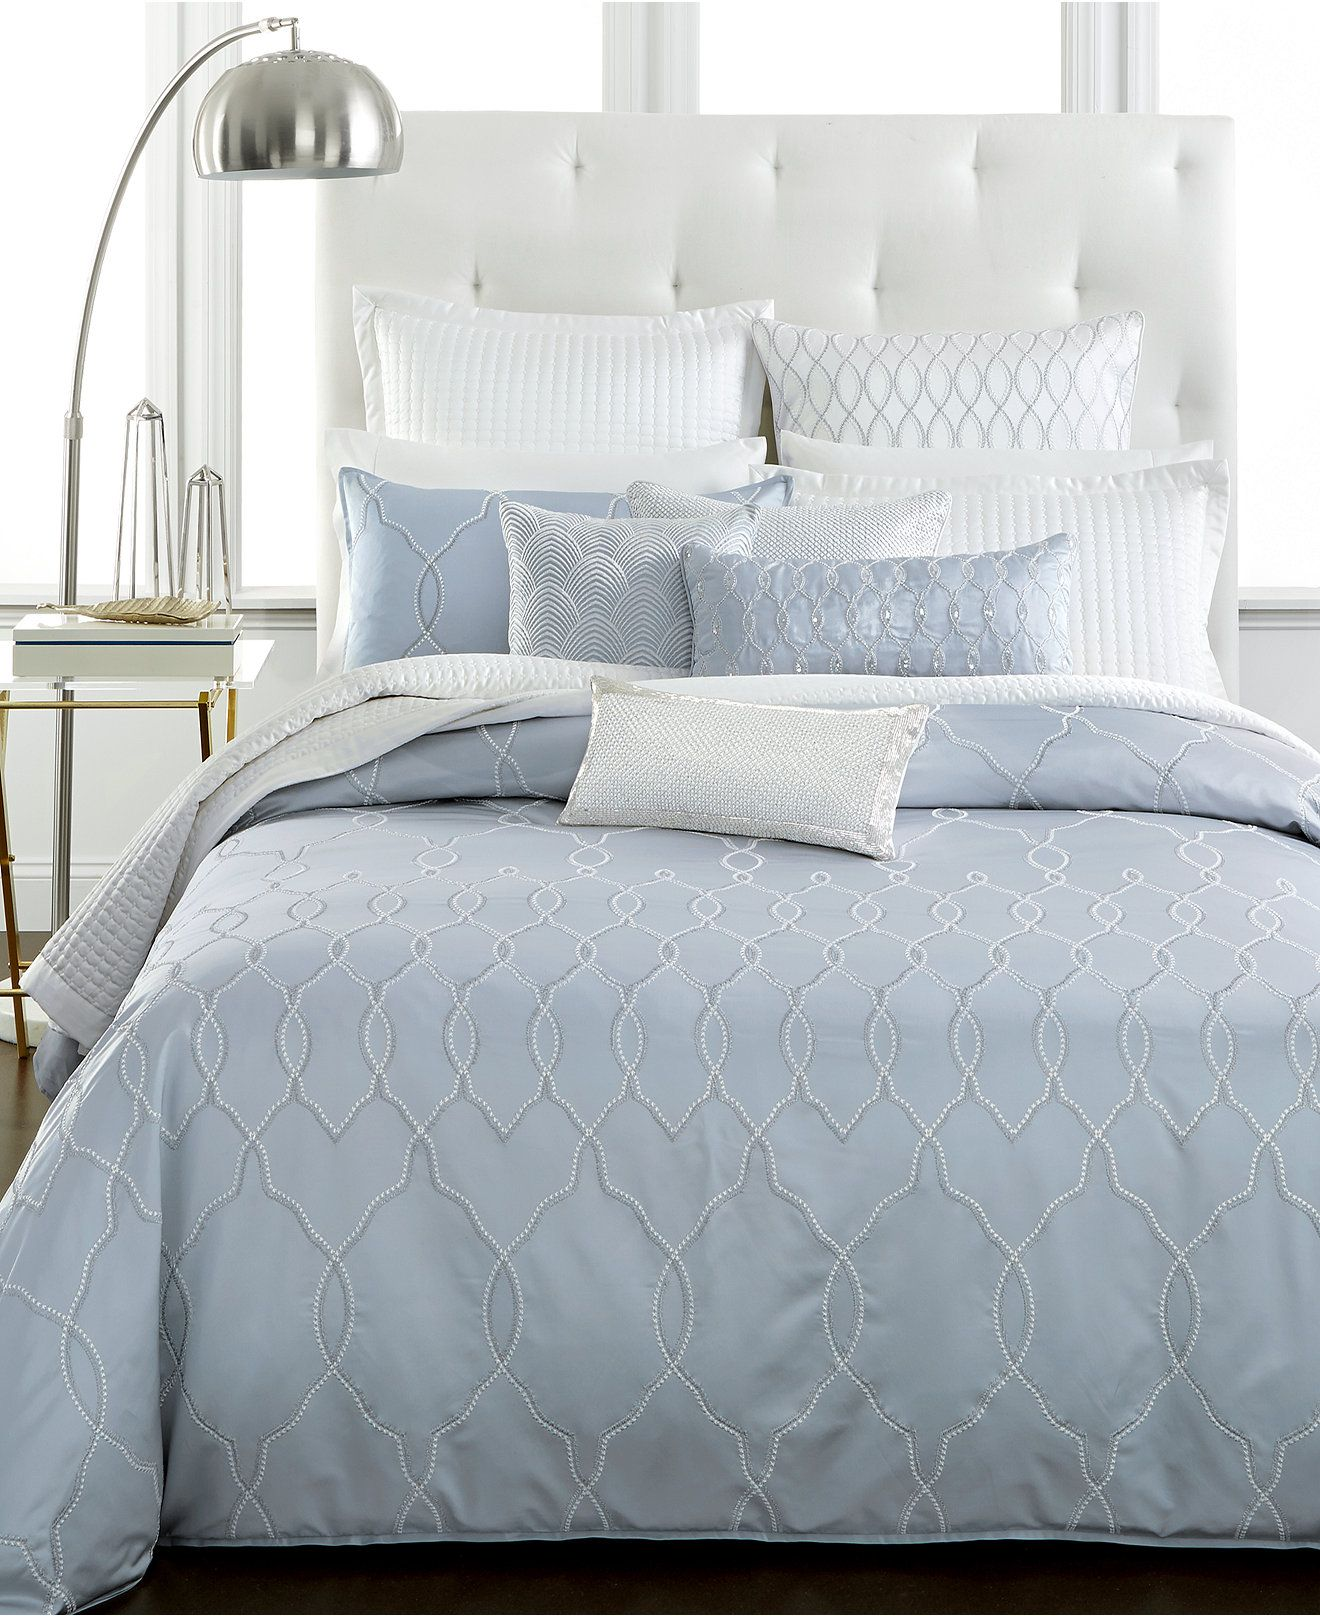 Hotel Collection Finest Pendant Bedding Macy' - Collections Bed